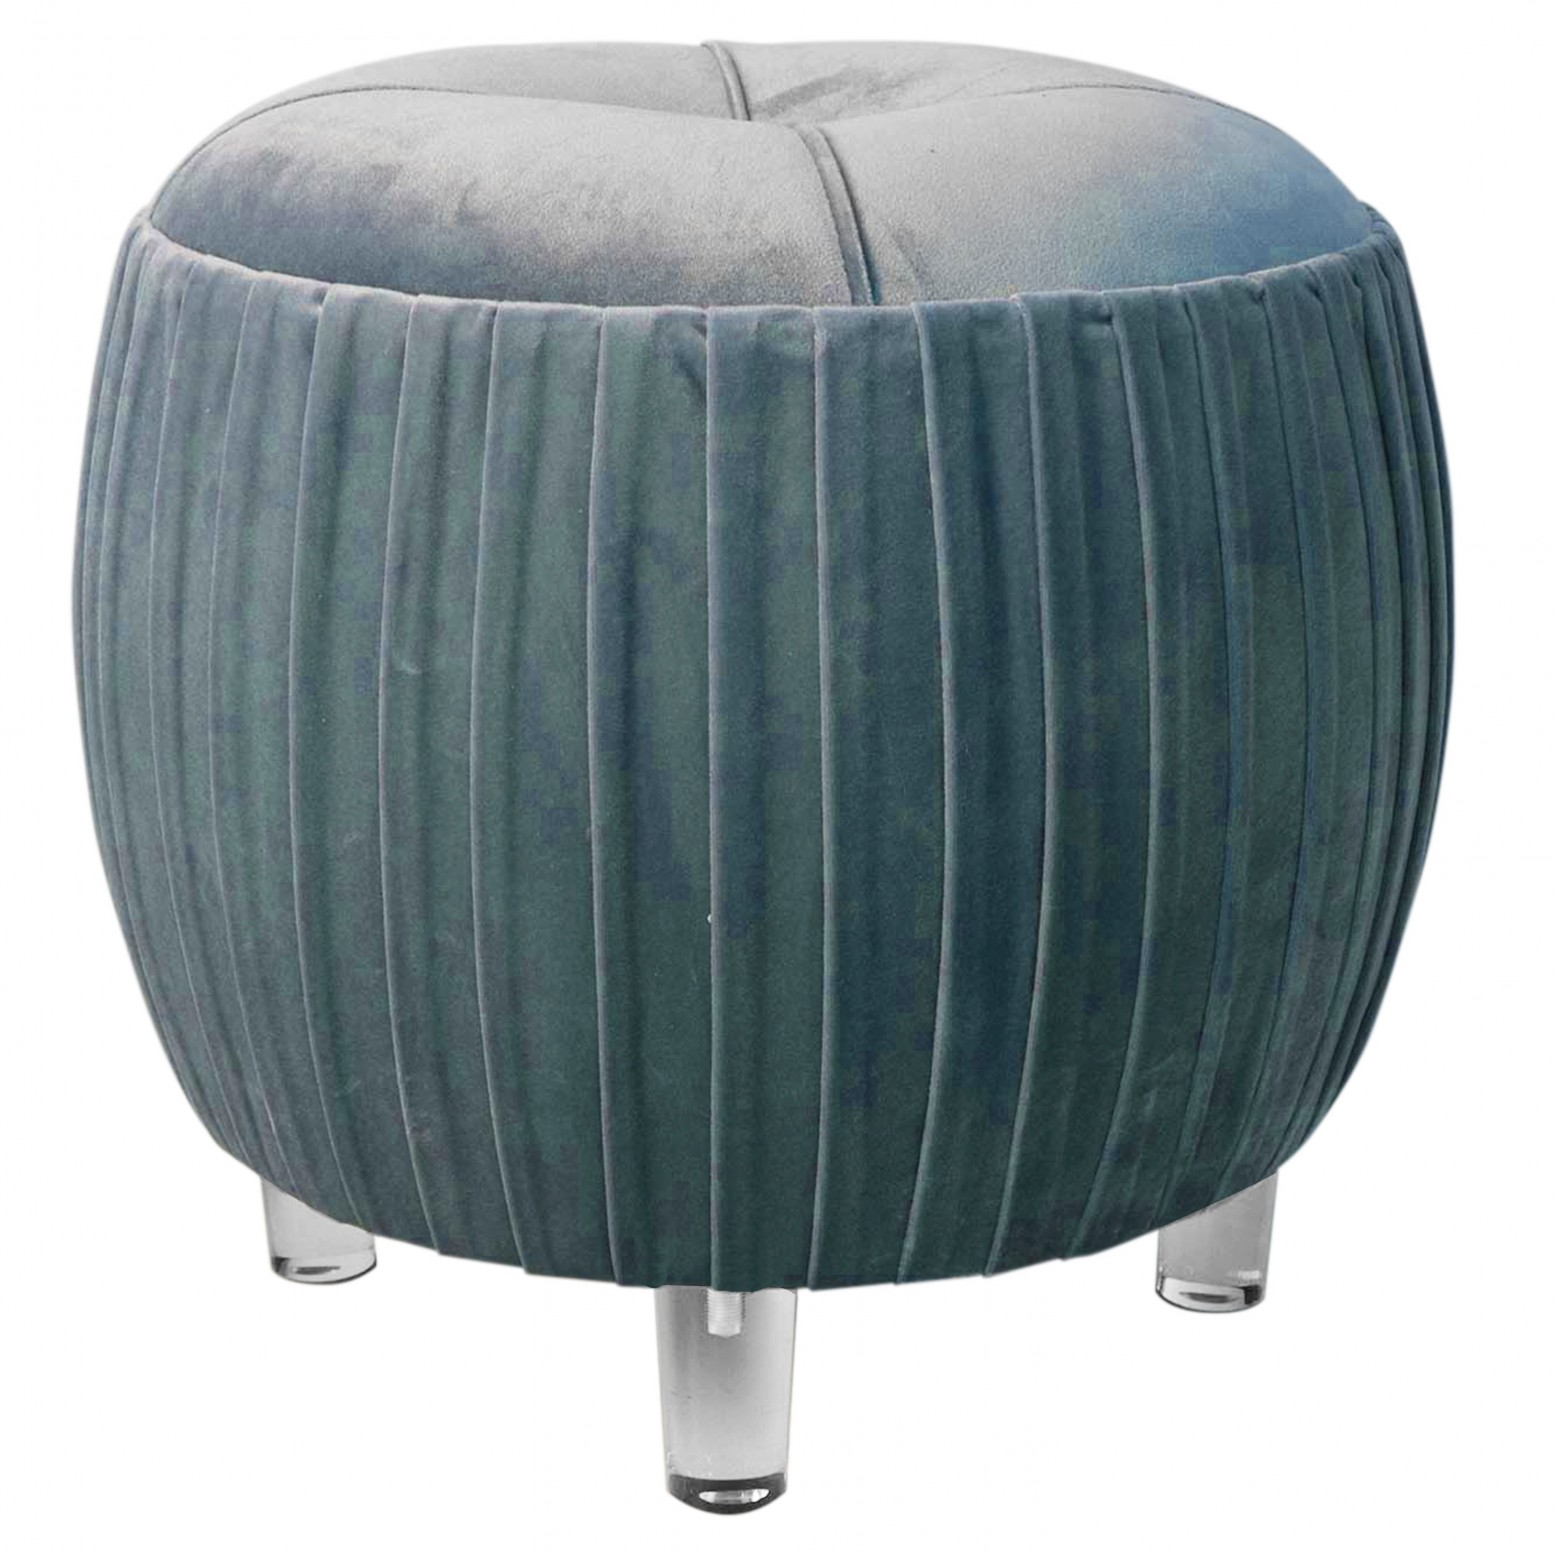 Enjoyable Helena Kd Small Round Tufted Ottoman Acrylic Legs Emerald Green Creativecarmelina Interior Chair Design Creativecarmelinacom